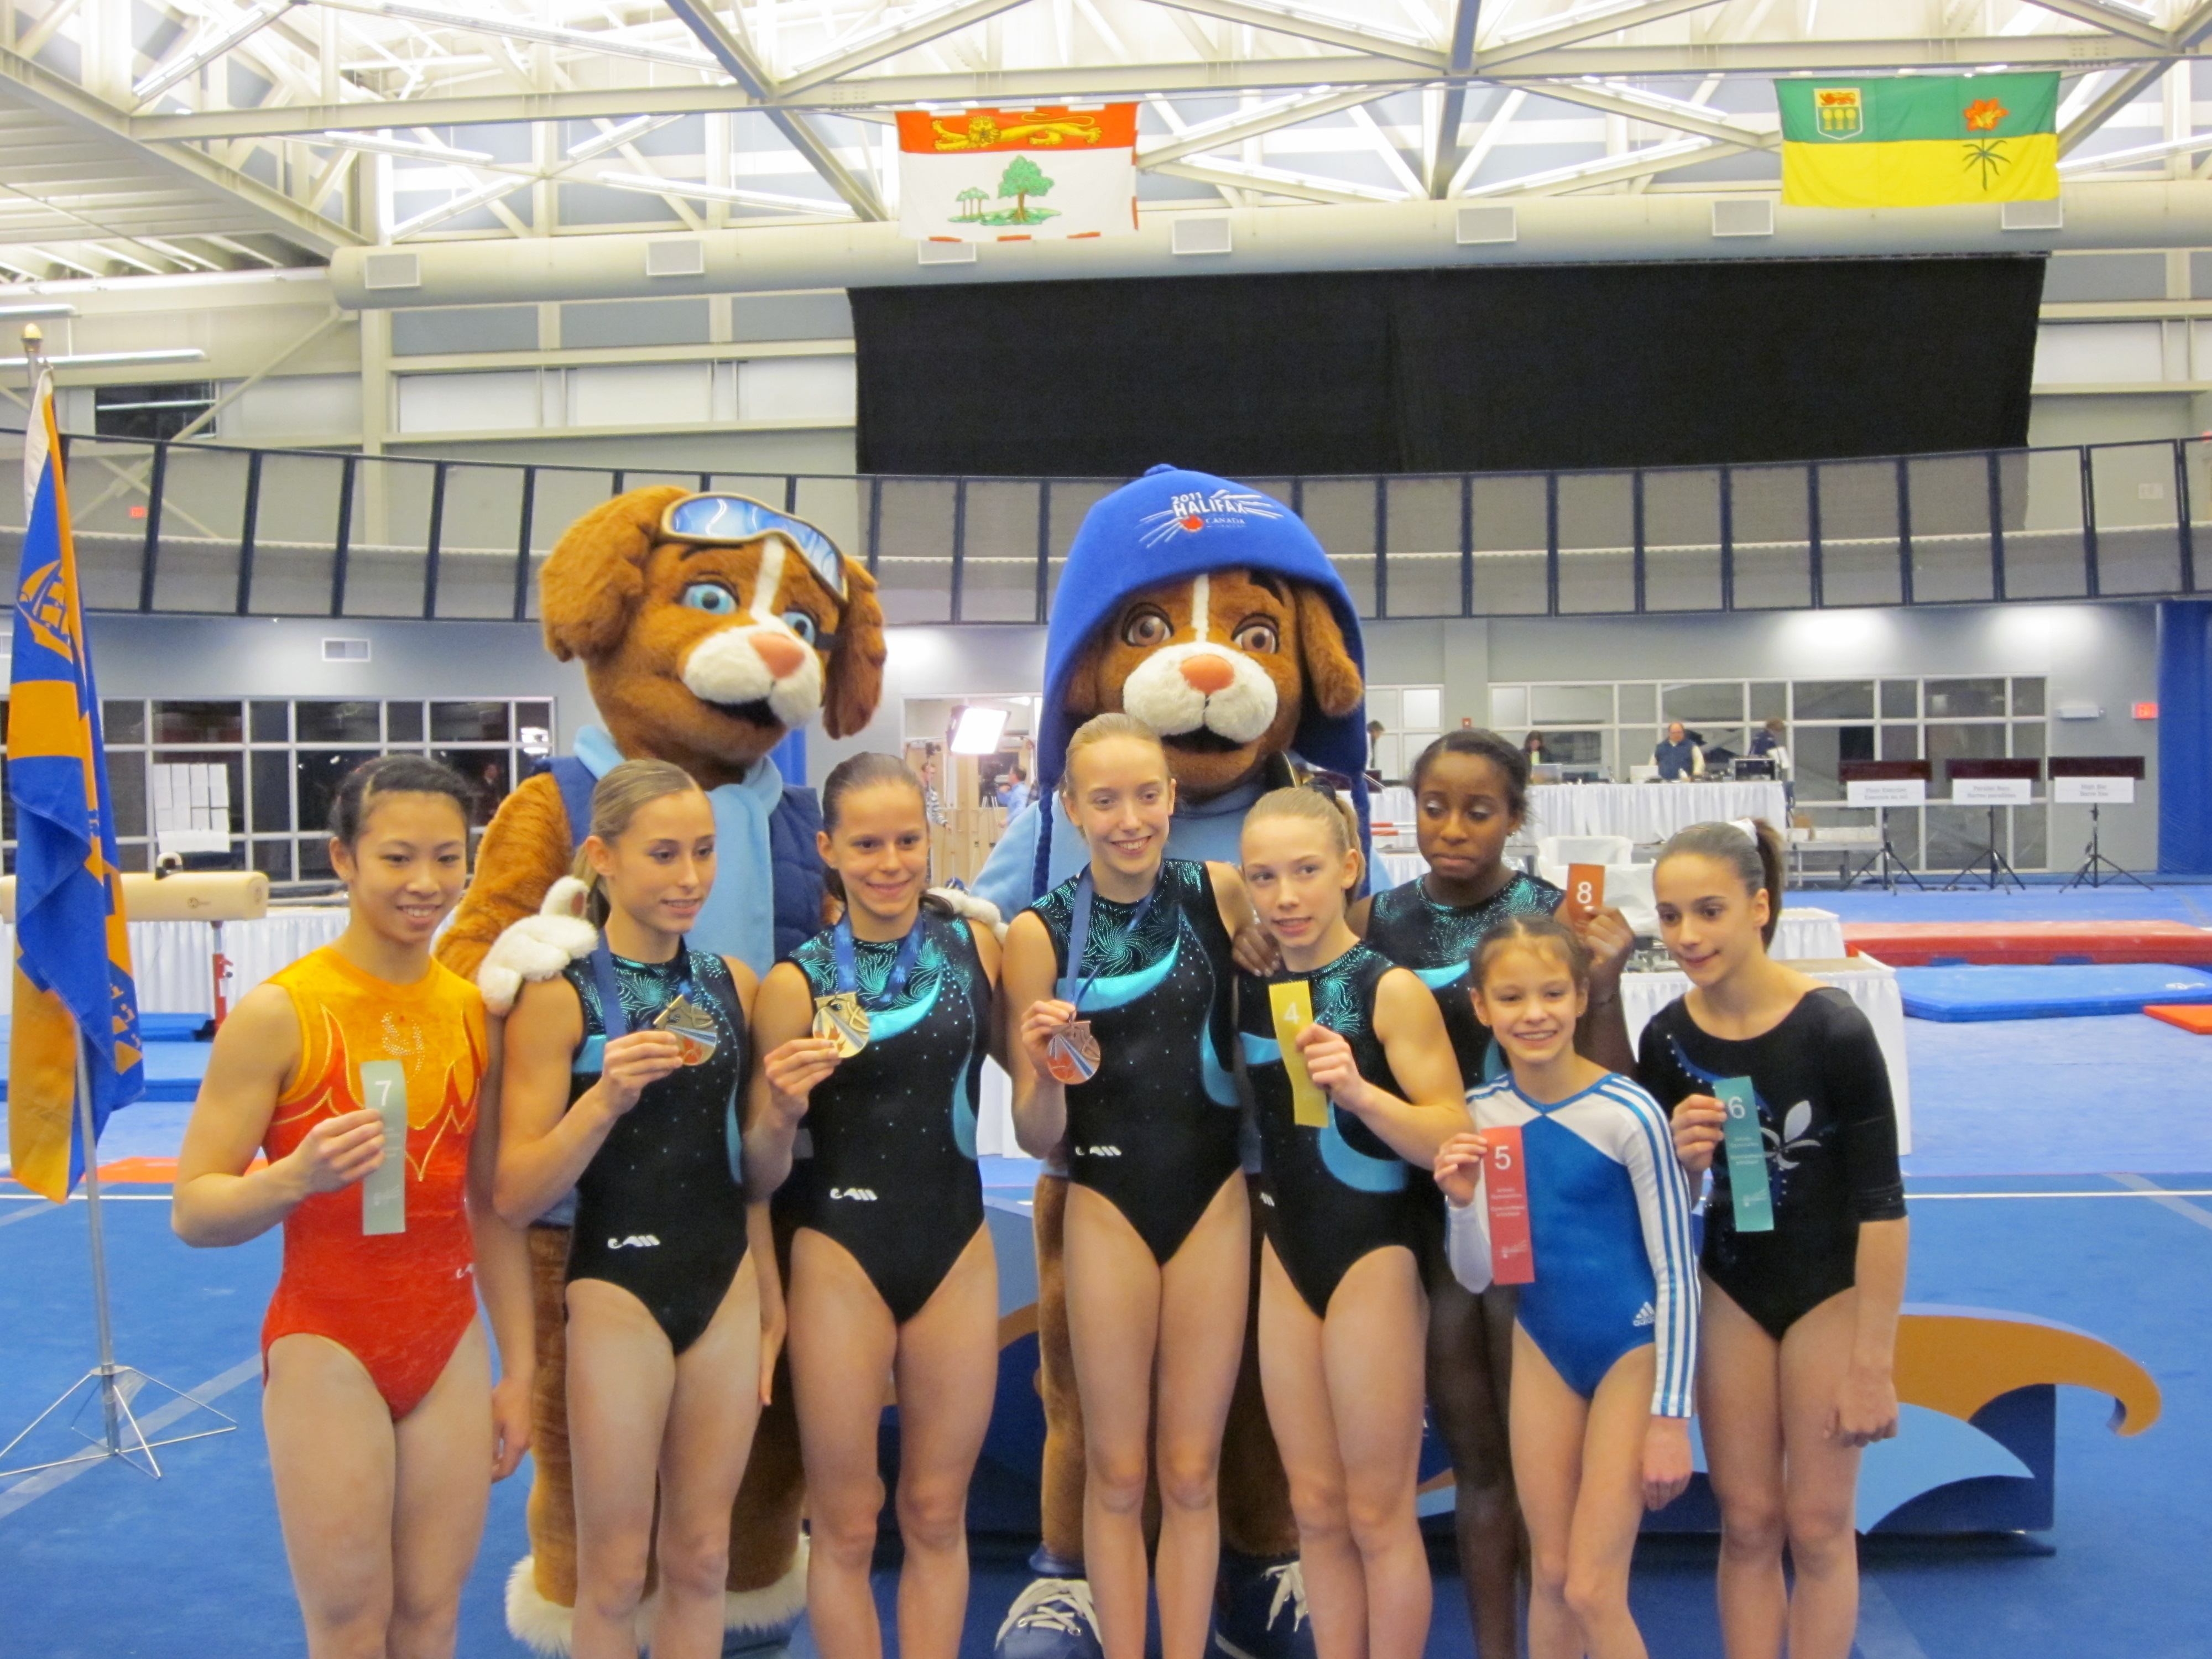 The top eight finishers in the women's individual all-around